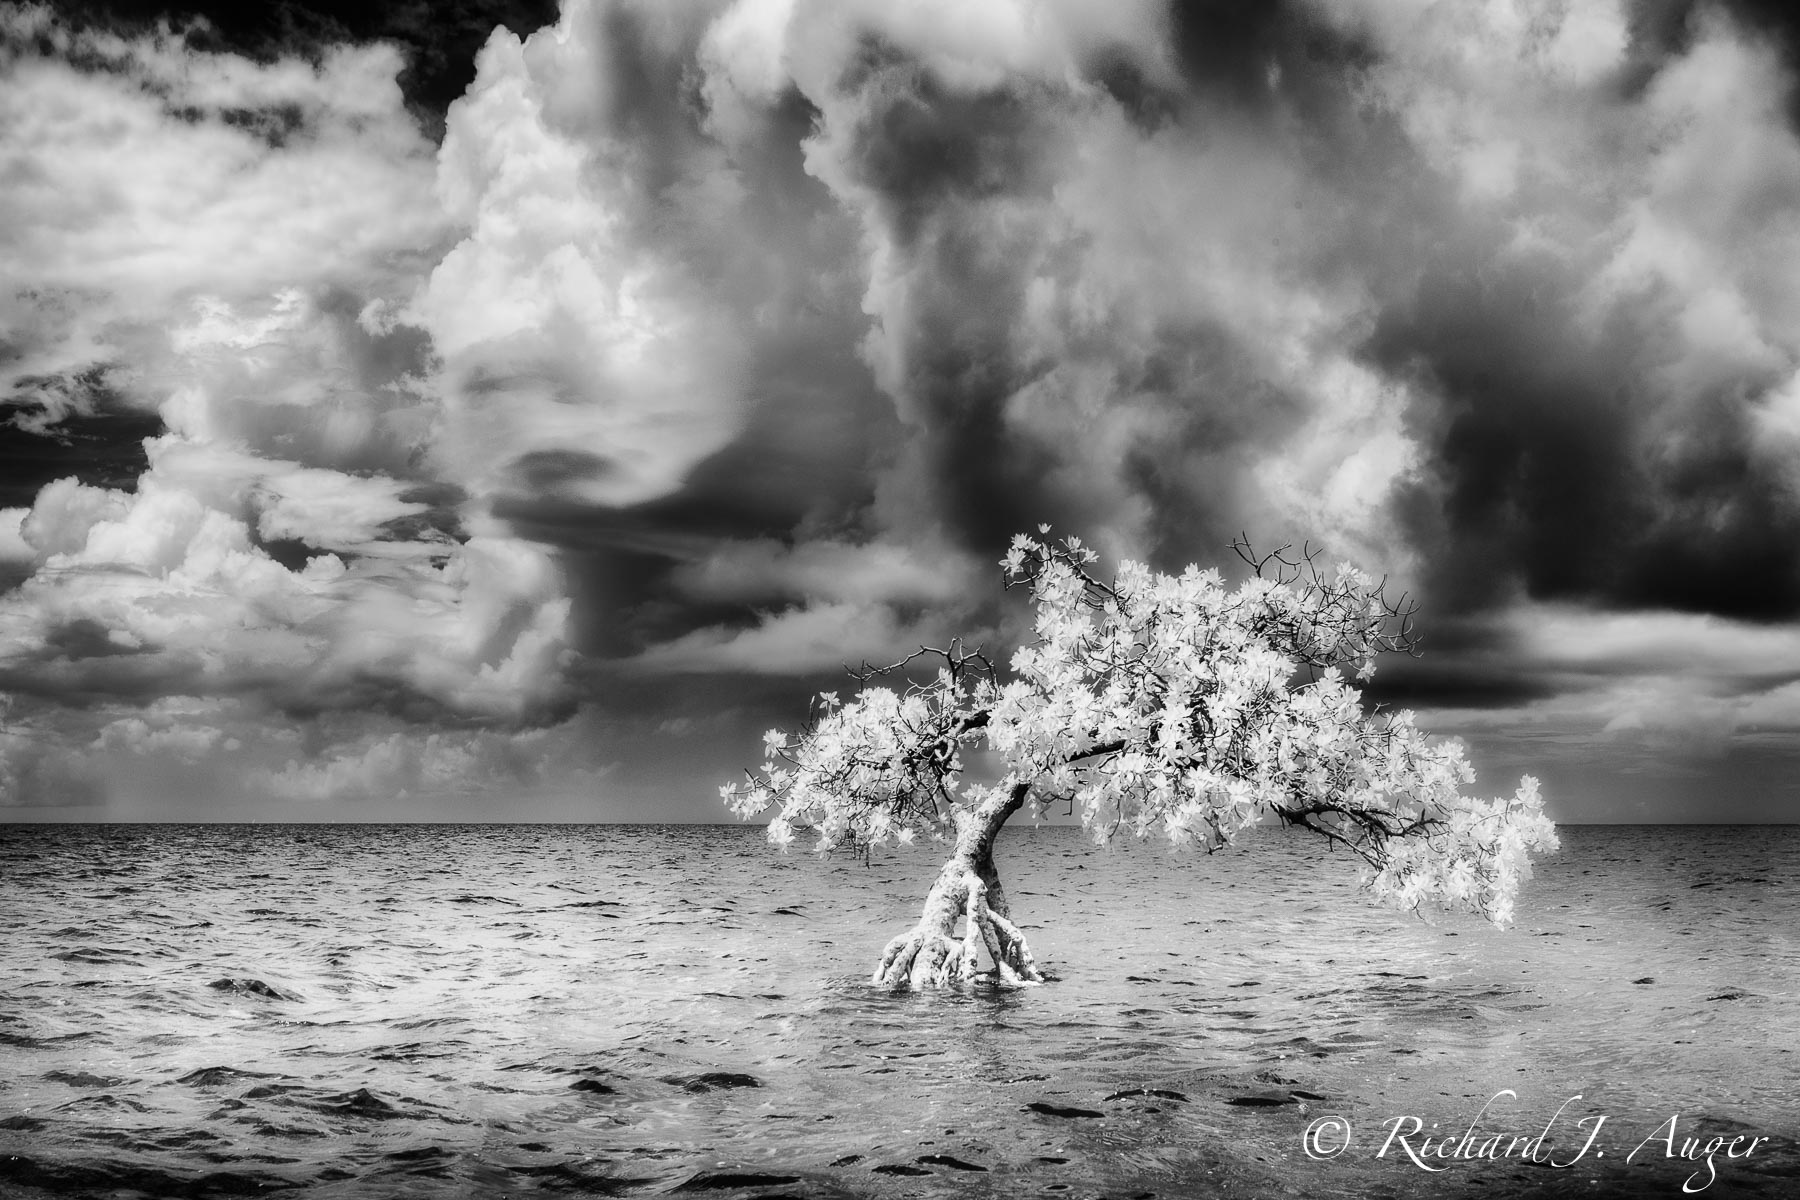 Long Key State Park, Florida Keys, Mangrove, Ocean, Stormy, Photograph, Photography, Landscape, Black and White, Infrared